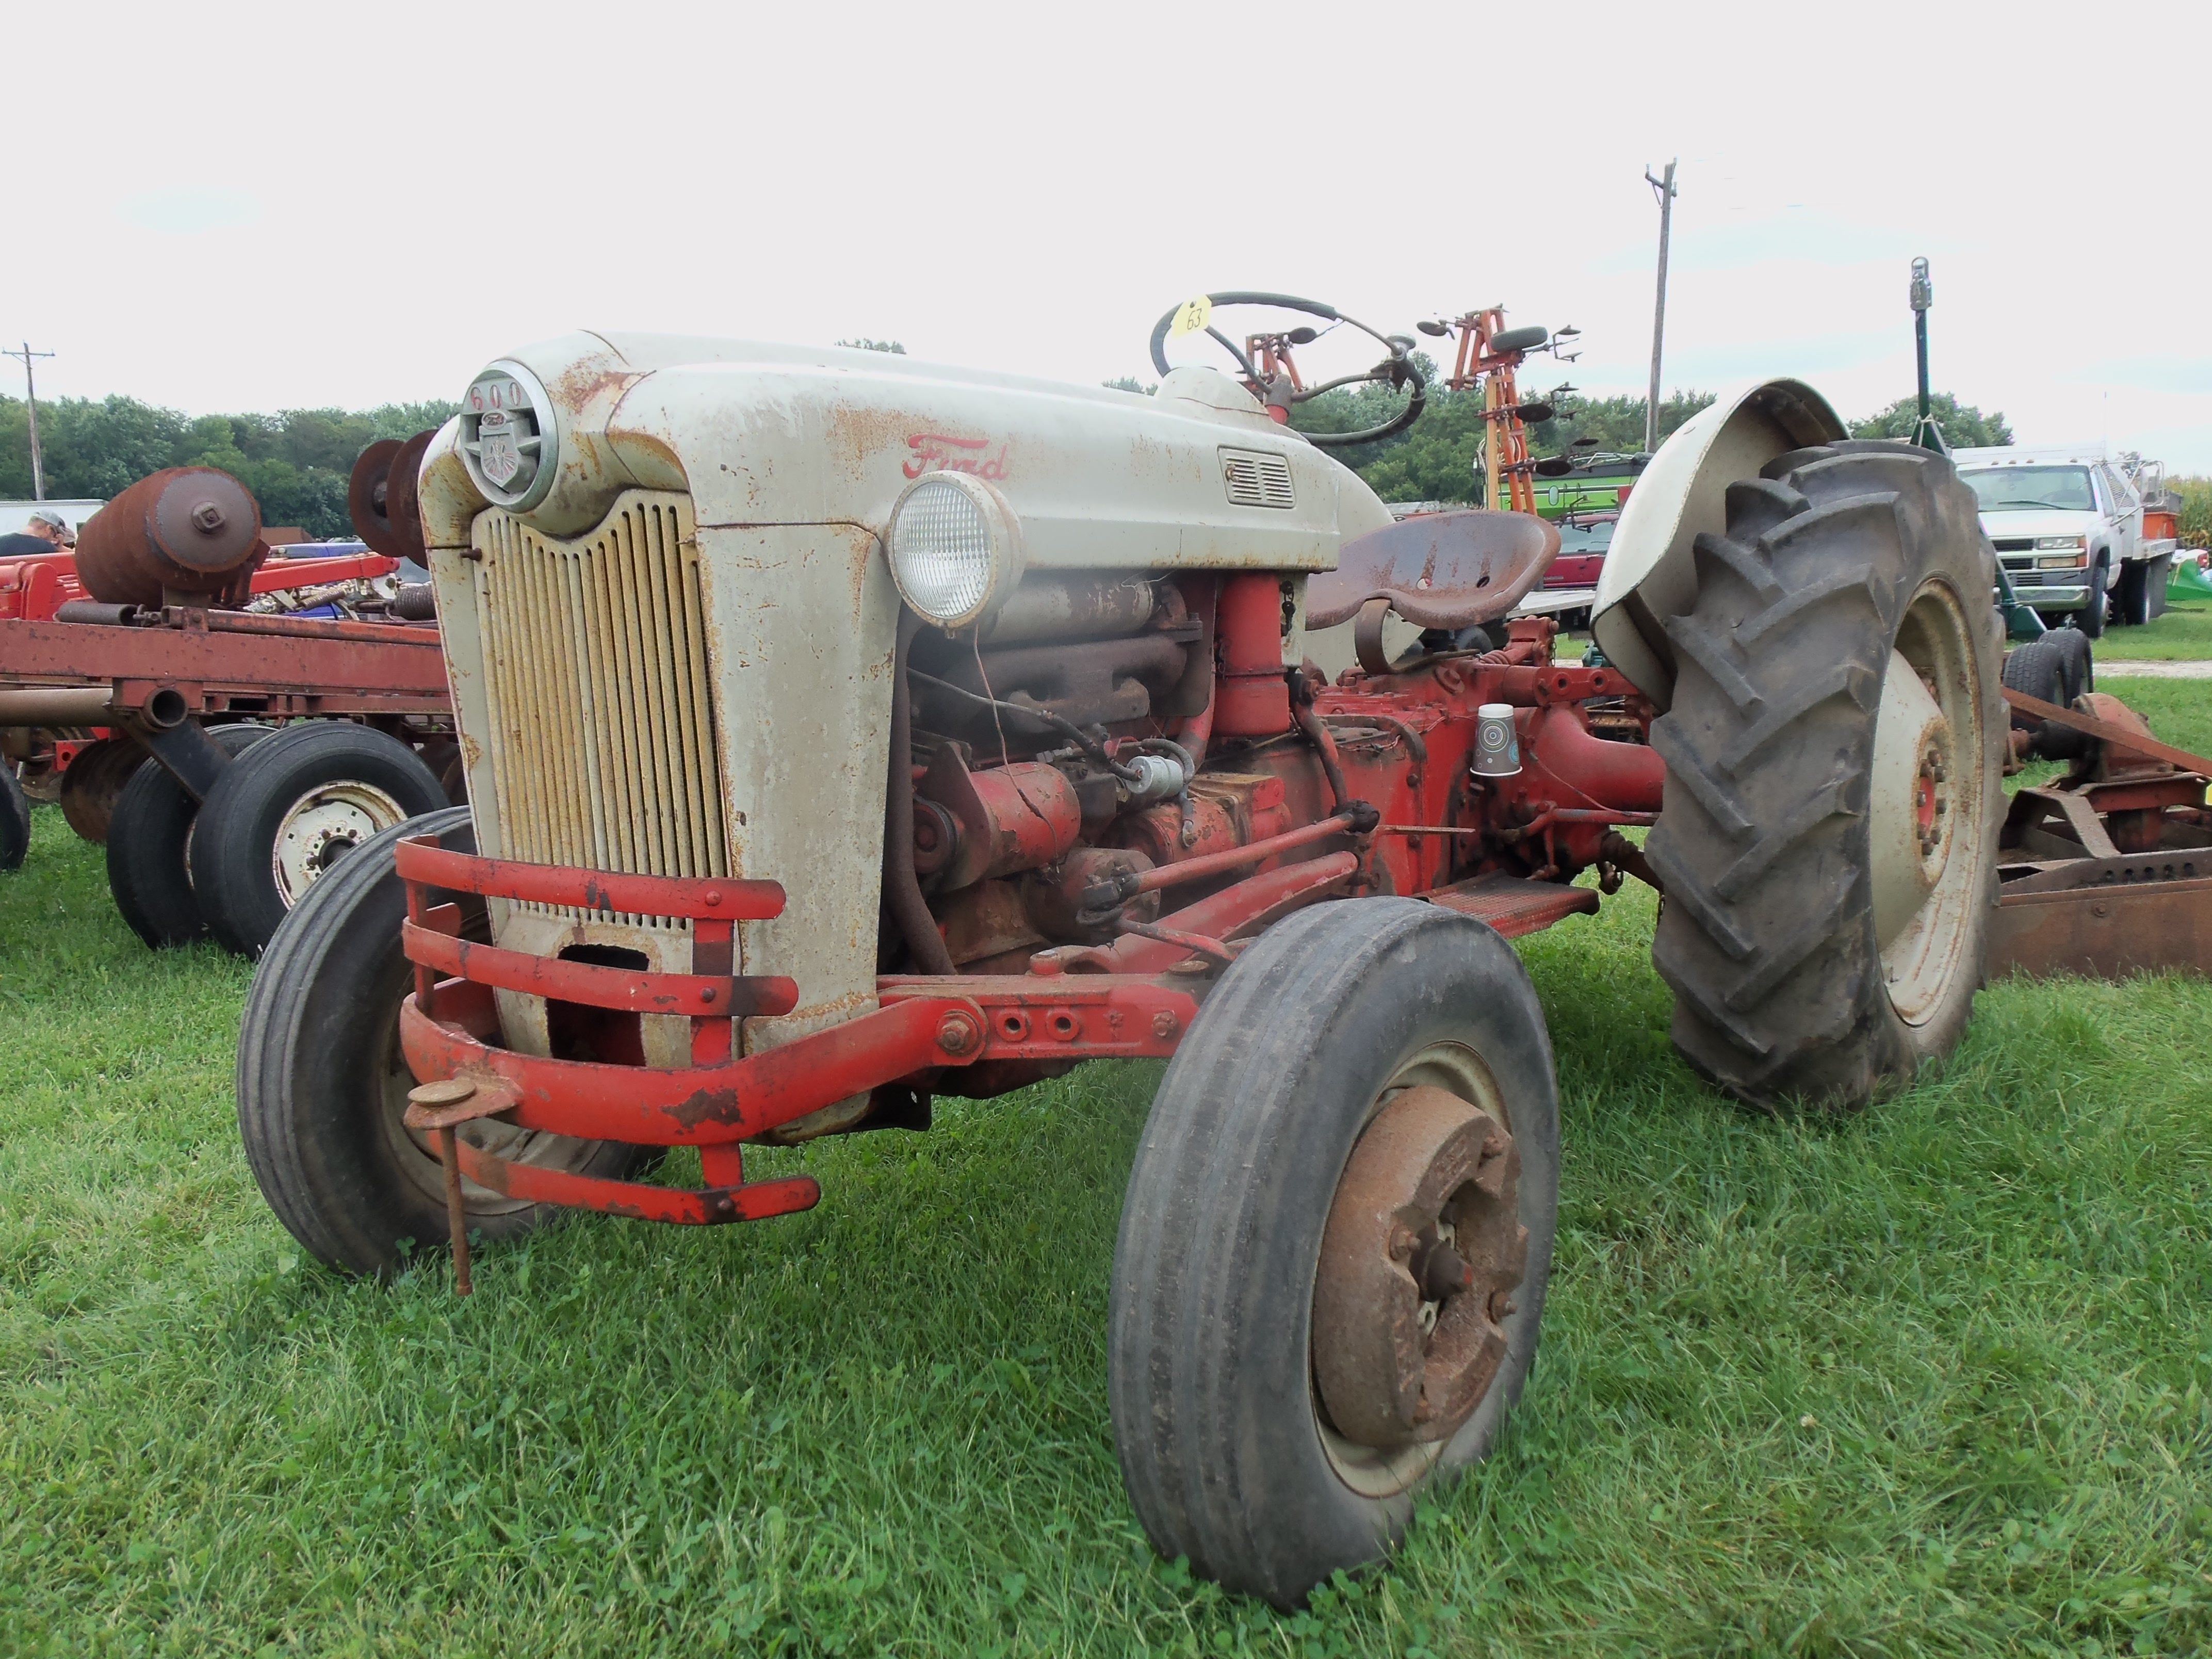 Ford 600 Tractor From 1950s Vintage Tractors Tractors Old Tractors